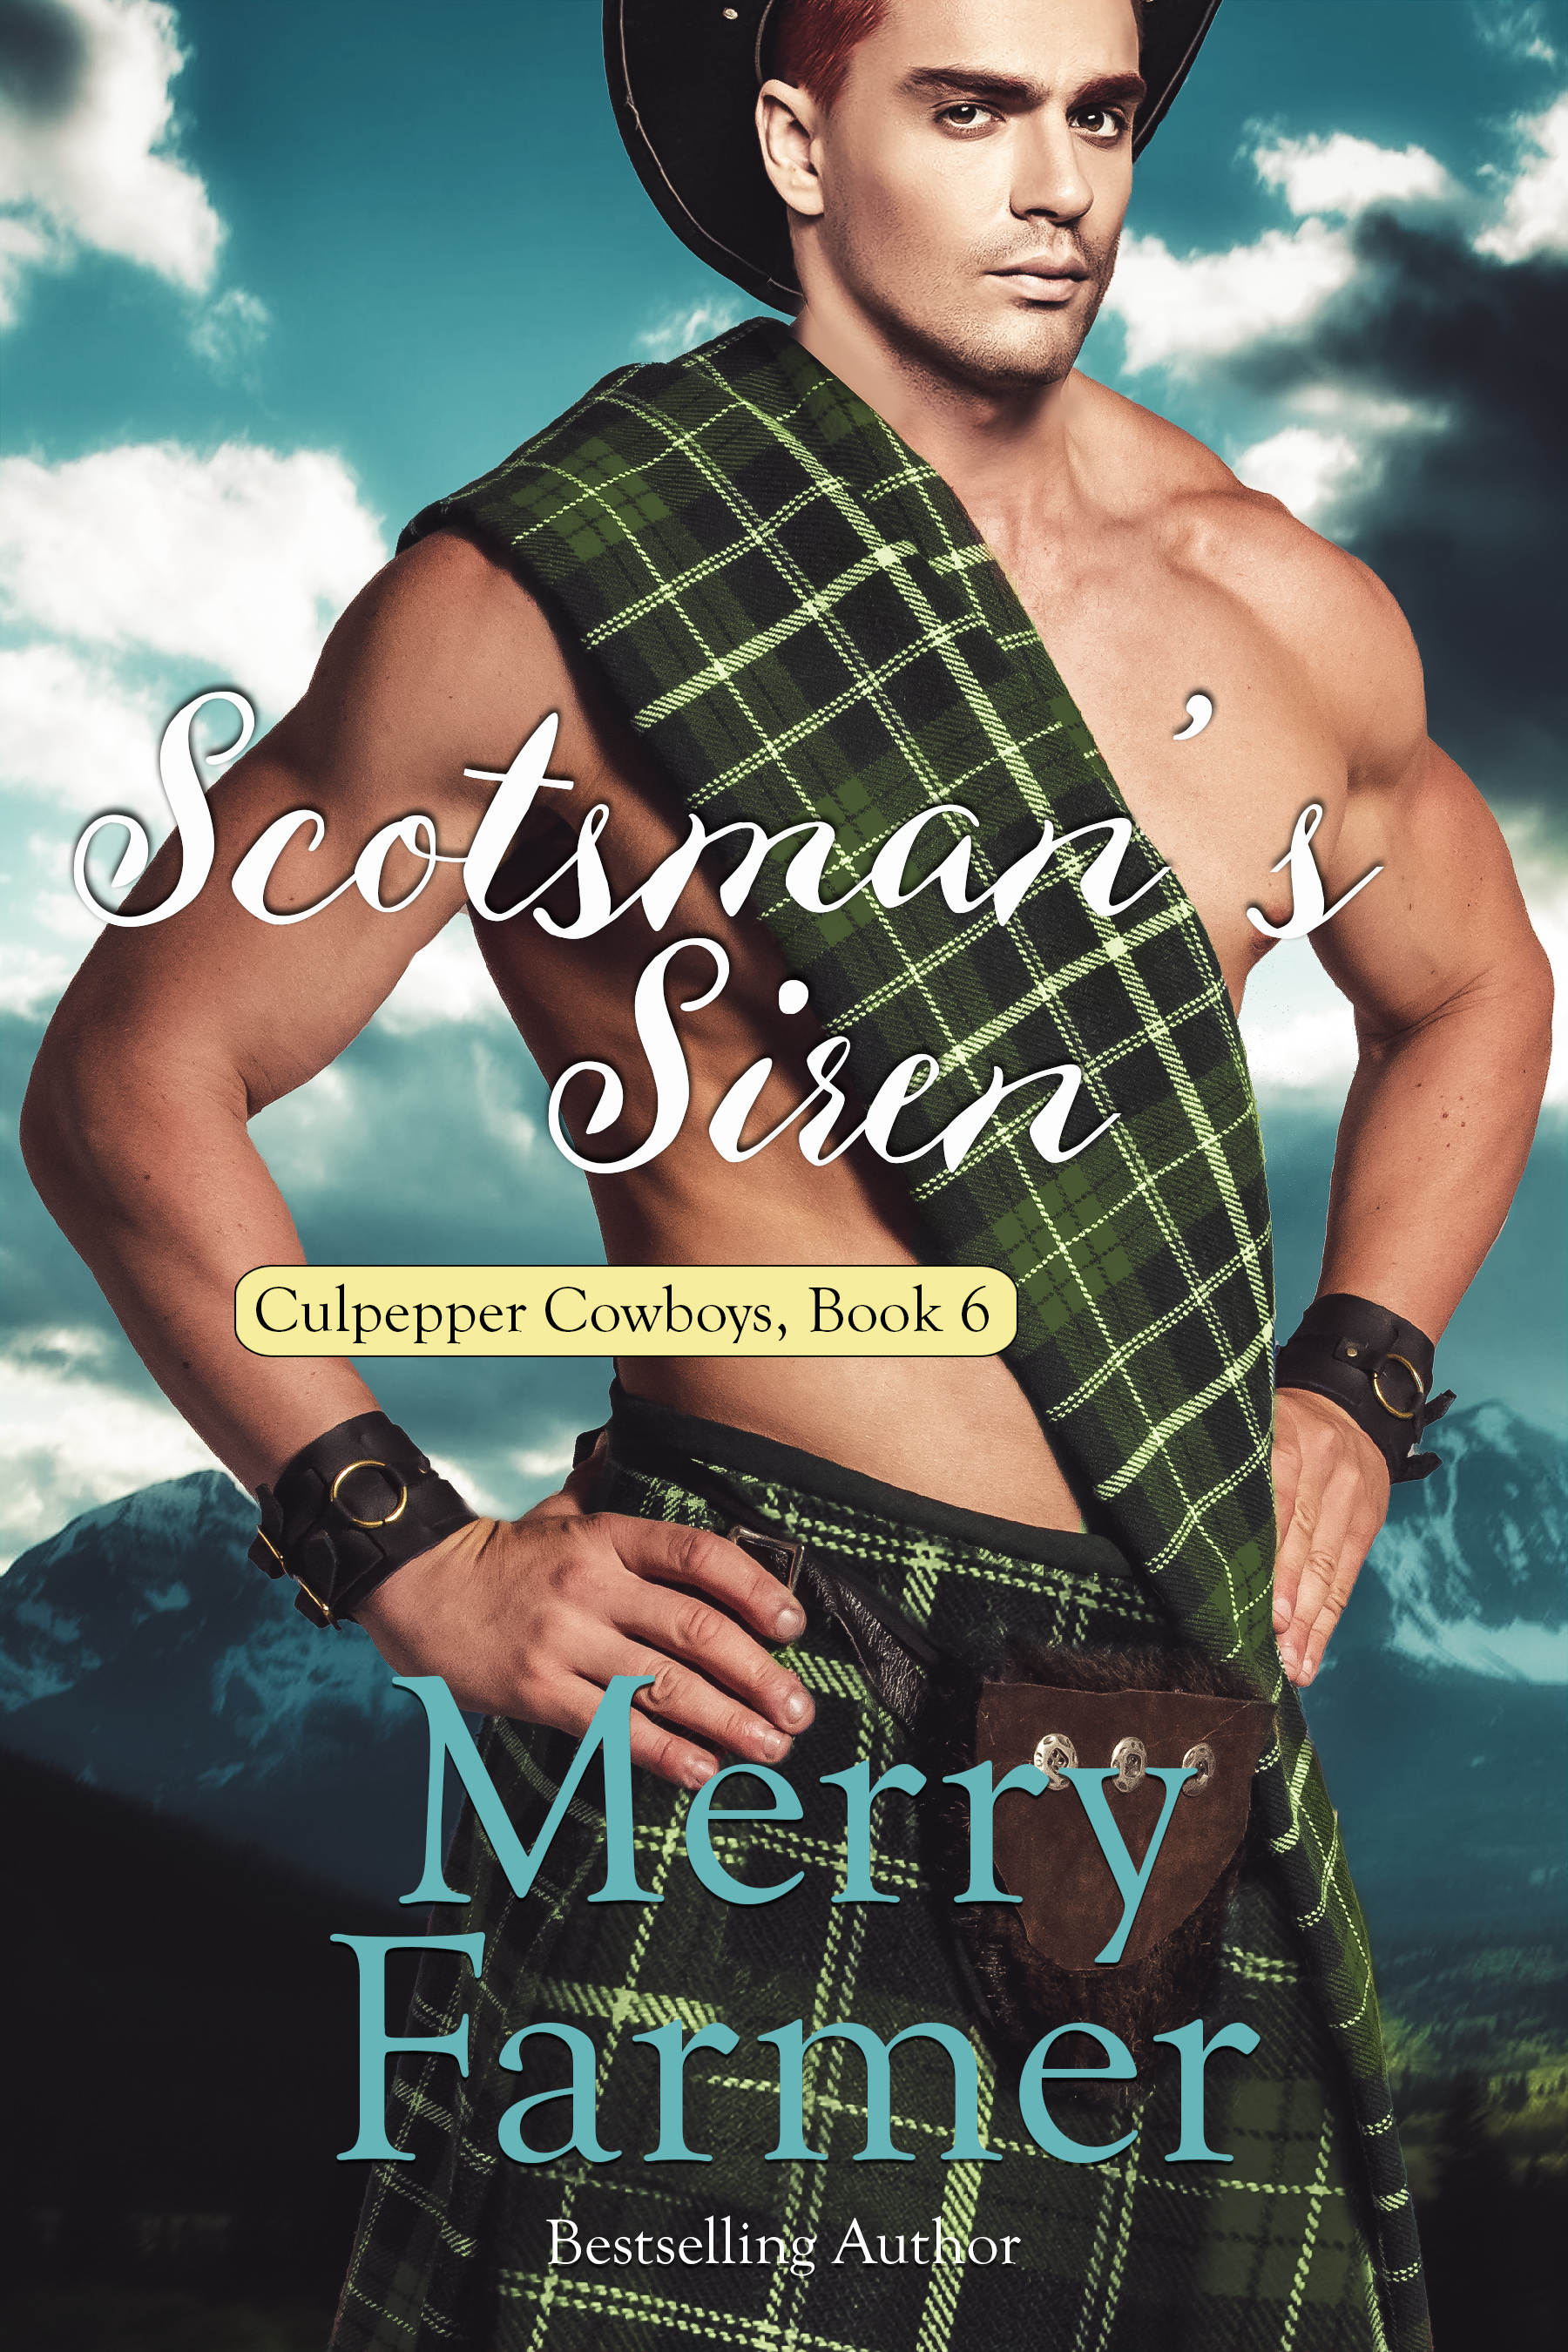 Scotsman's Siren (Book 6) - From the day she was born, Honor Quinlan was forced to live up to impossible standards. Her twin, Grace, was always more feminine, more obedient, and more appreciated, while she was always reminded of how wicked and willful she was. So when she is given the chance to get away from her parents' iron rule, to move out to the Culpepper ranch in Wyoming—where her older sisters had married the Culpepper cowboys—and to marry rancher, Angus MacFarlane she runs for it.But no one who was raised the way Honor was escapes unscathed.All Scotsman Angus MacFarlane has ever wanted is a large, loving family, unlike the one he was raised in. He would give his life for Linda Culpepper and her sons and their ranch, especially when it comes to thwarting the machinations of the dastardly cousin Travis. But when Honor sweeps into his life, everything changes.For Angus, it's love at first sight. But can he help her overcome the scars of her childhood and teach her to trust him?PLEASE BE ADVISED: Steam Level: HOT